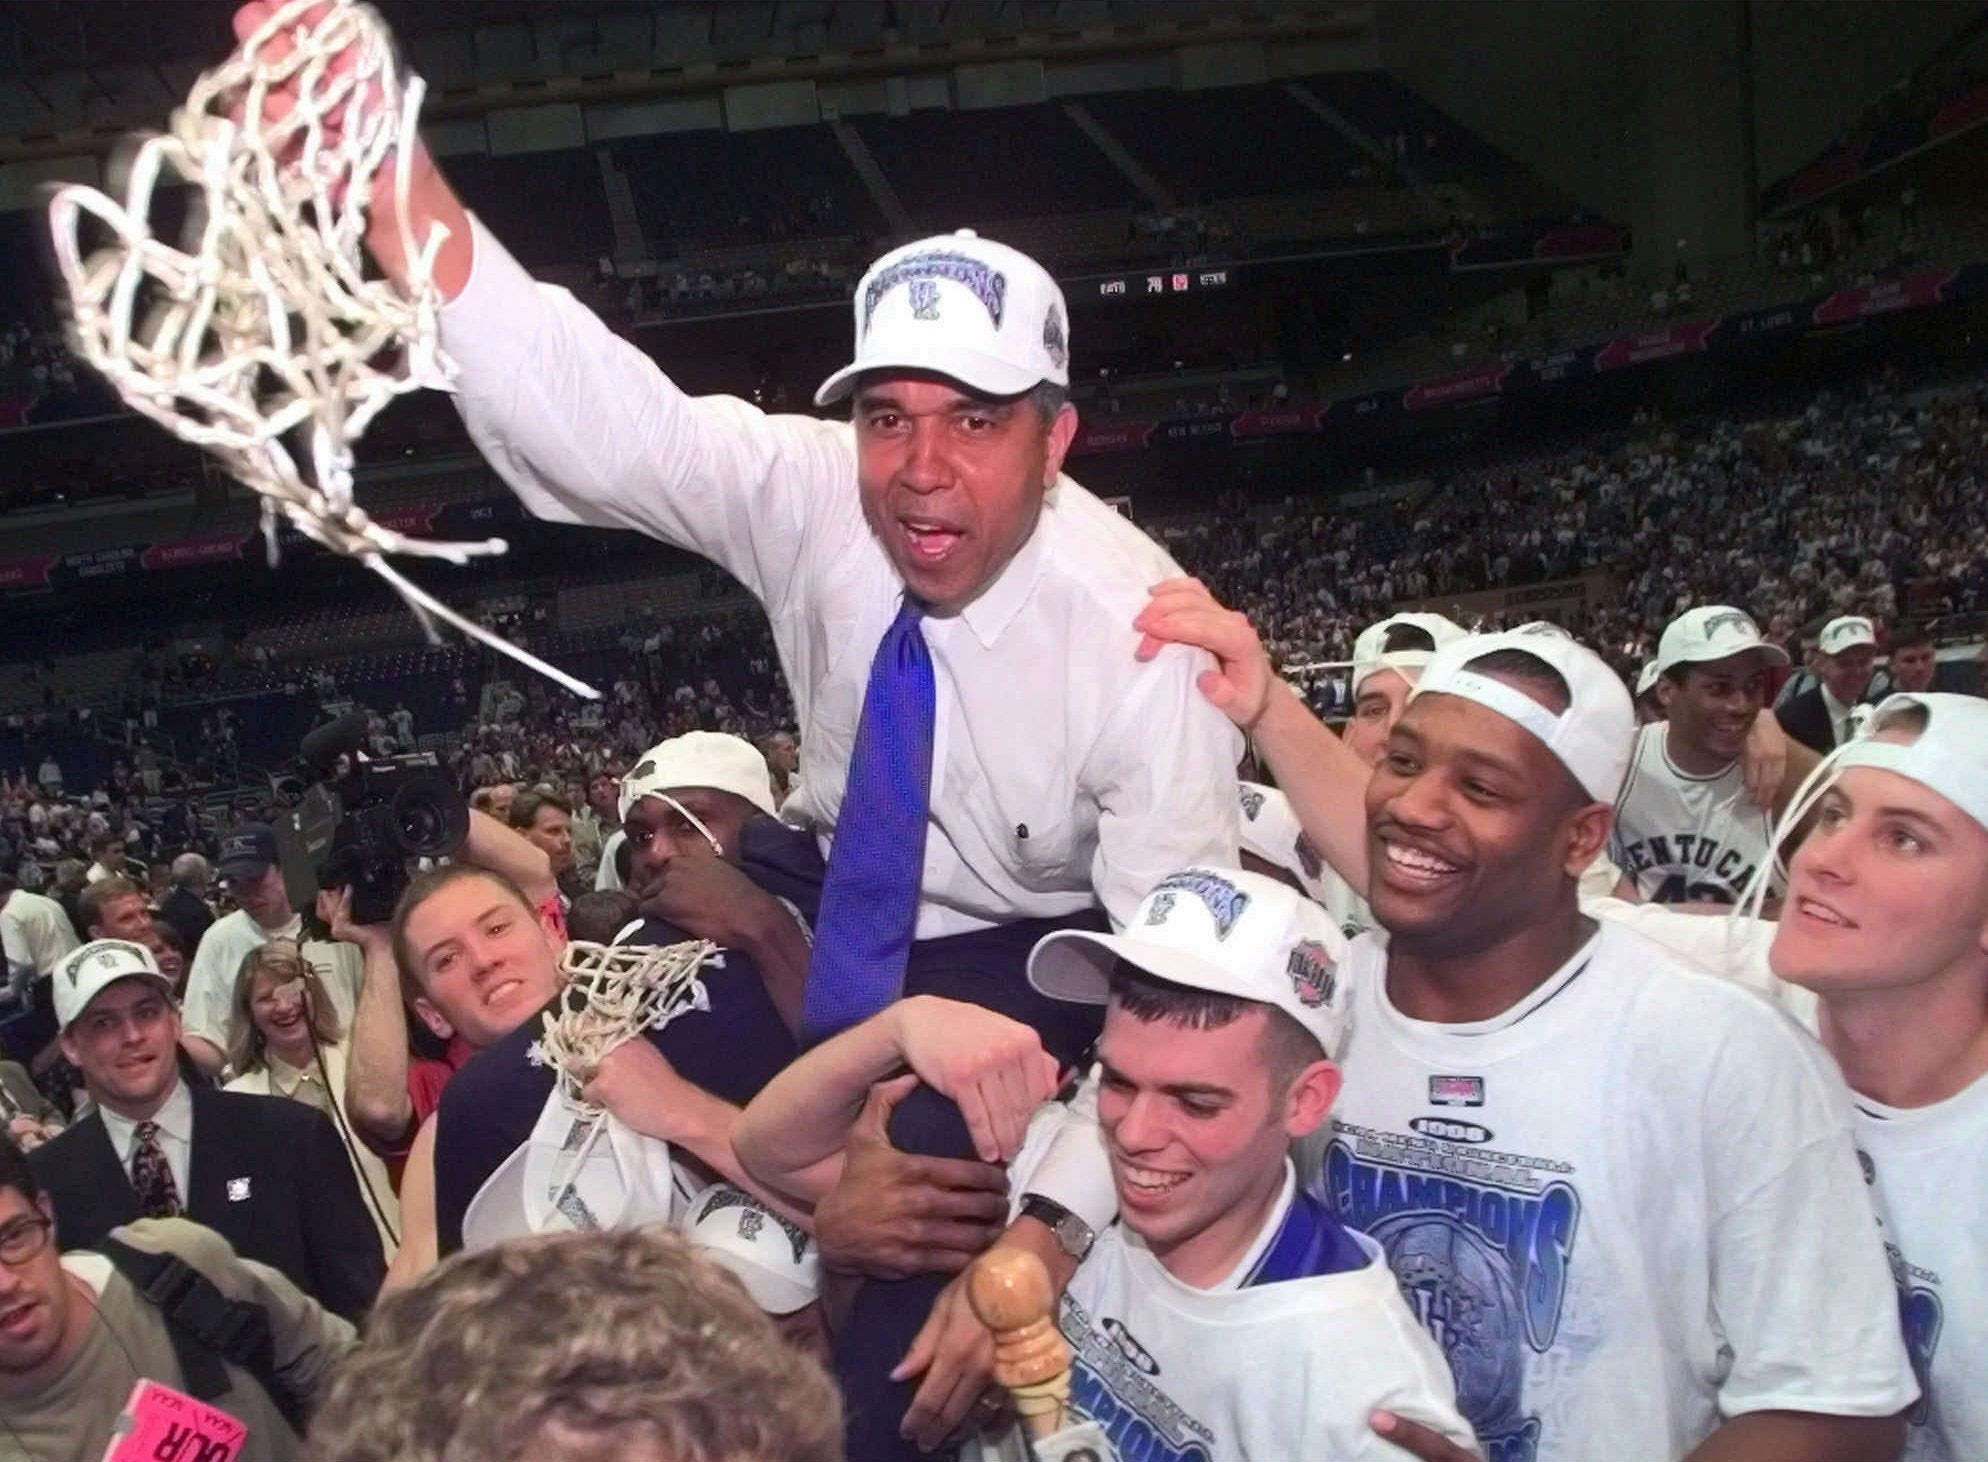 National championship-winning coach Tubby Smith to be honored by Kentucky basketball